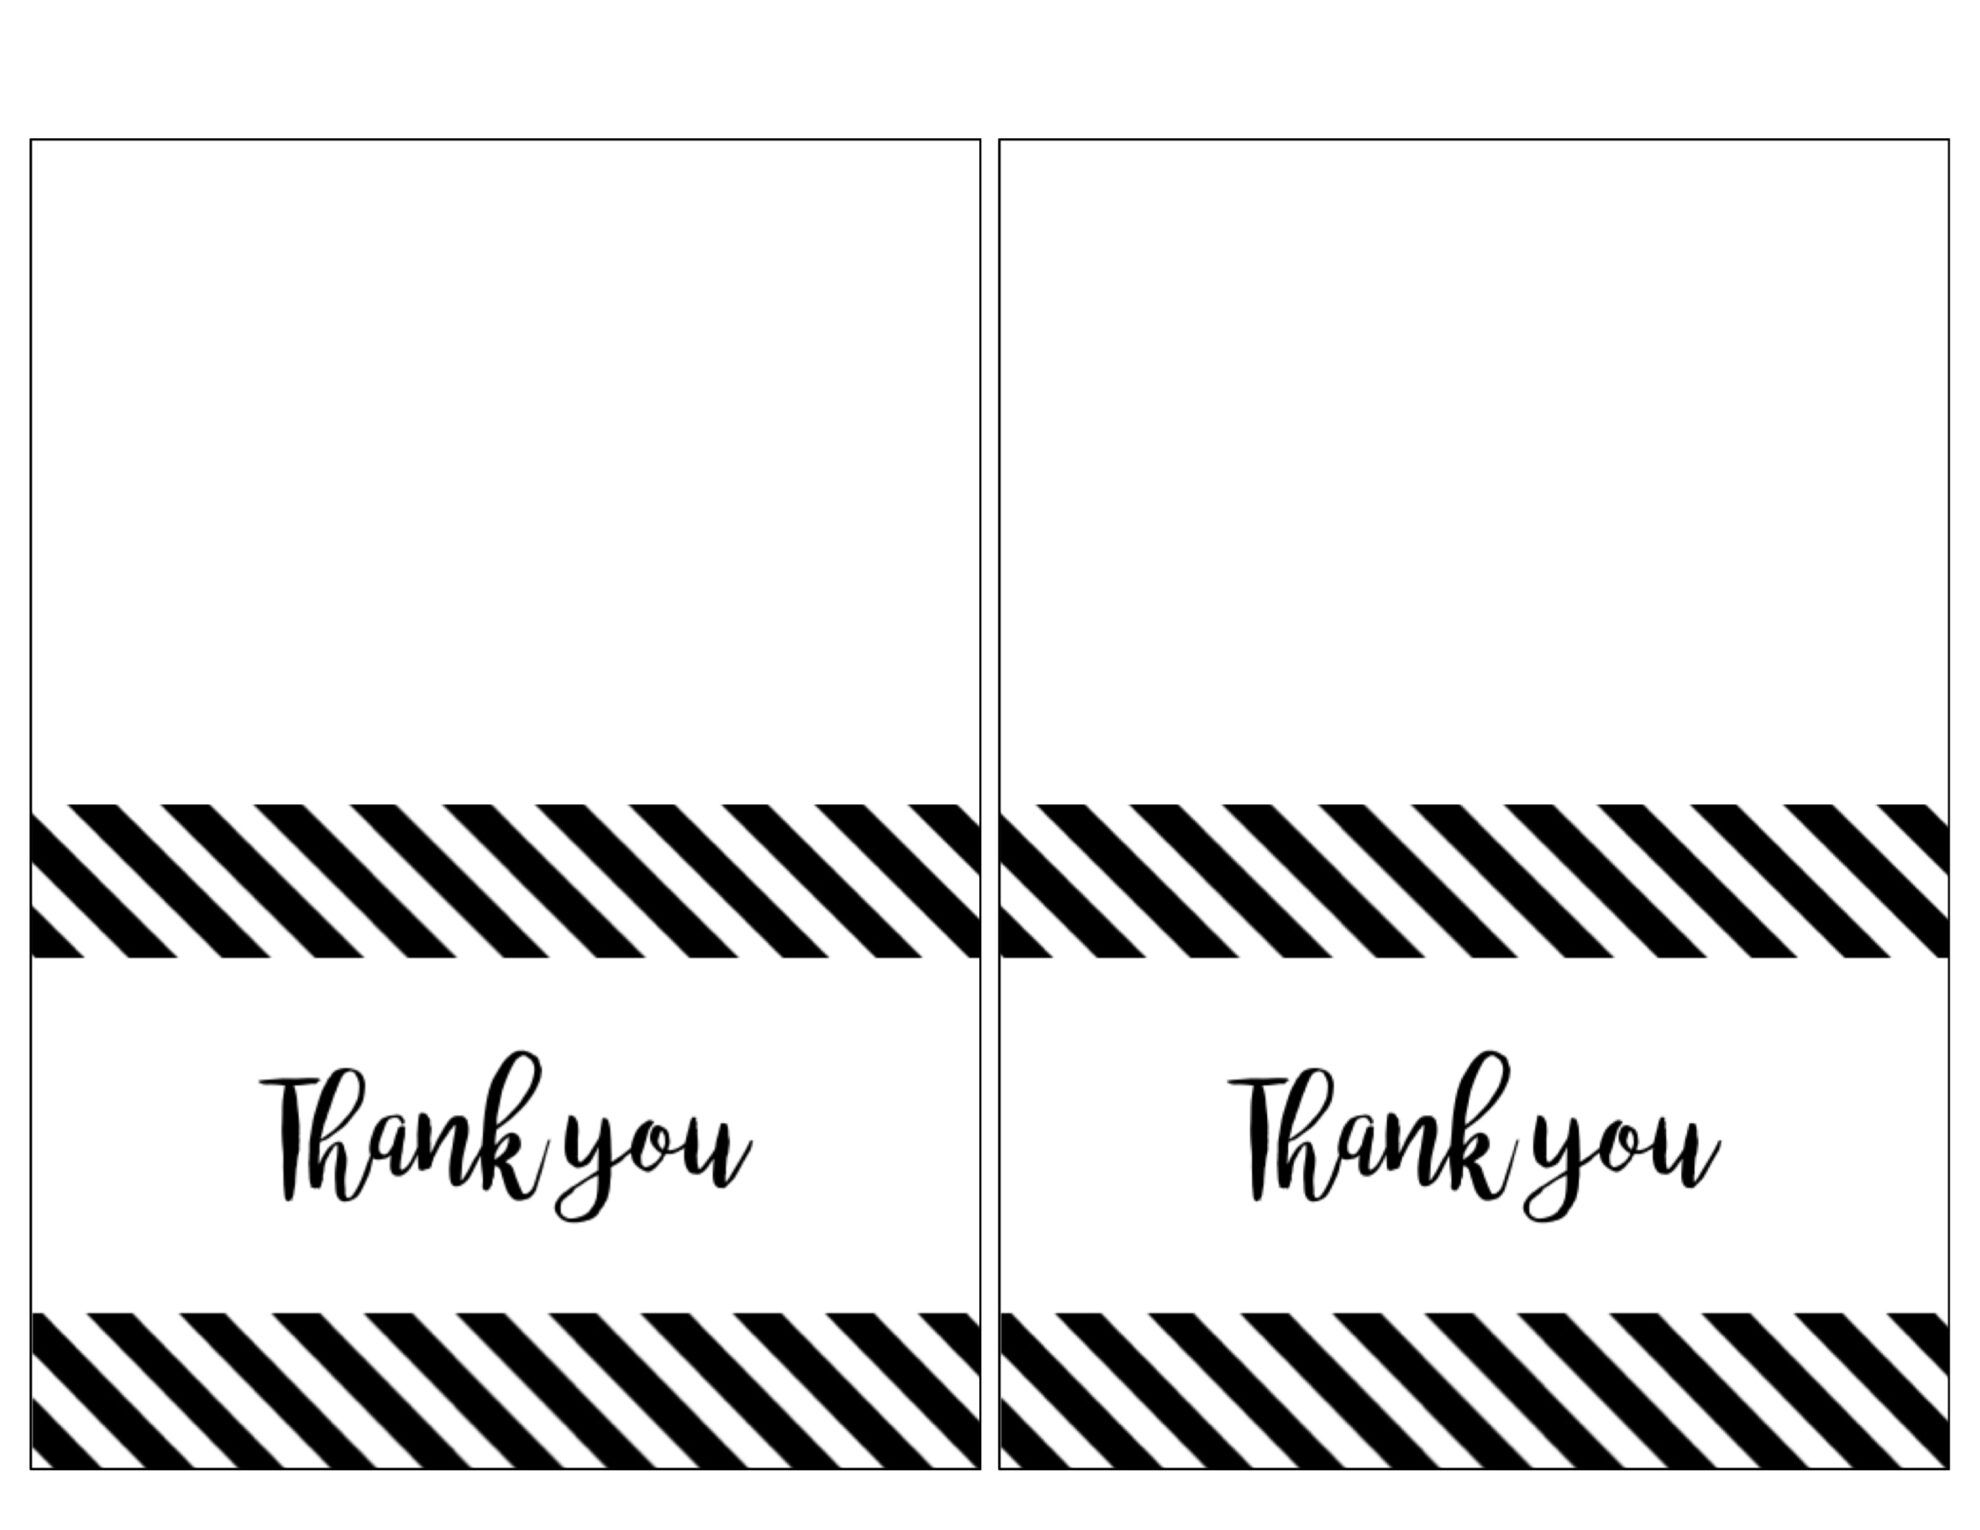 007 Wondrou Thank You Note Template Free Printable Picture Full